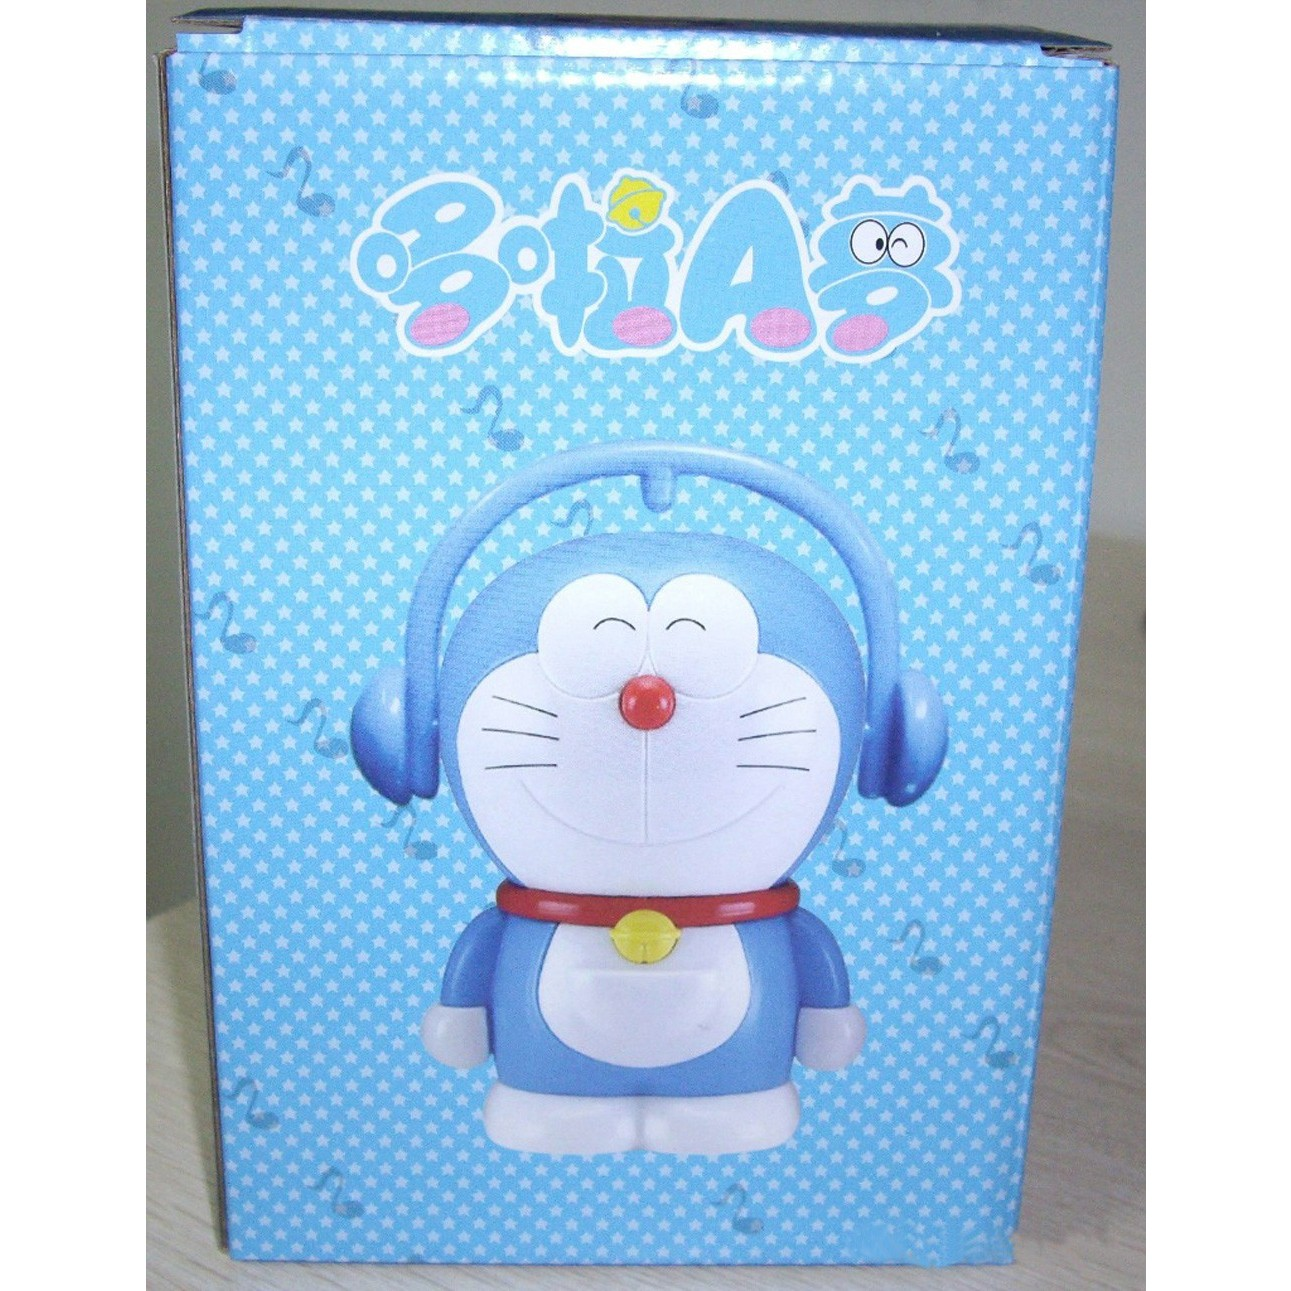 Cheap Piggy Banks For Sale Cheap Music Doraemon Figure Toys Piggy Bank 15cm 5 9inch